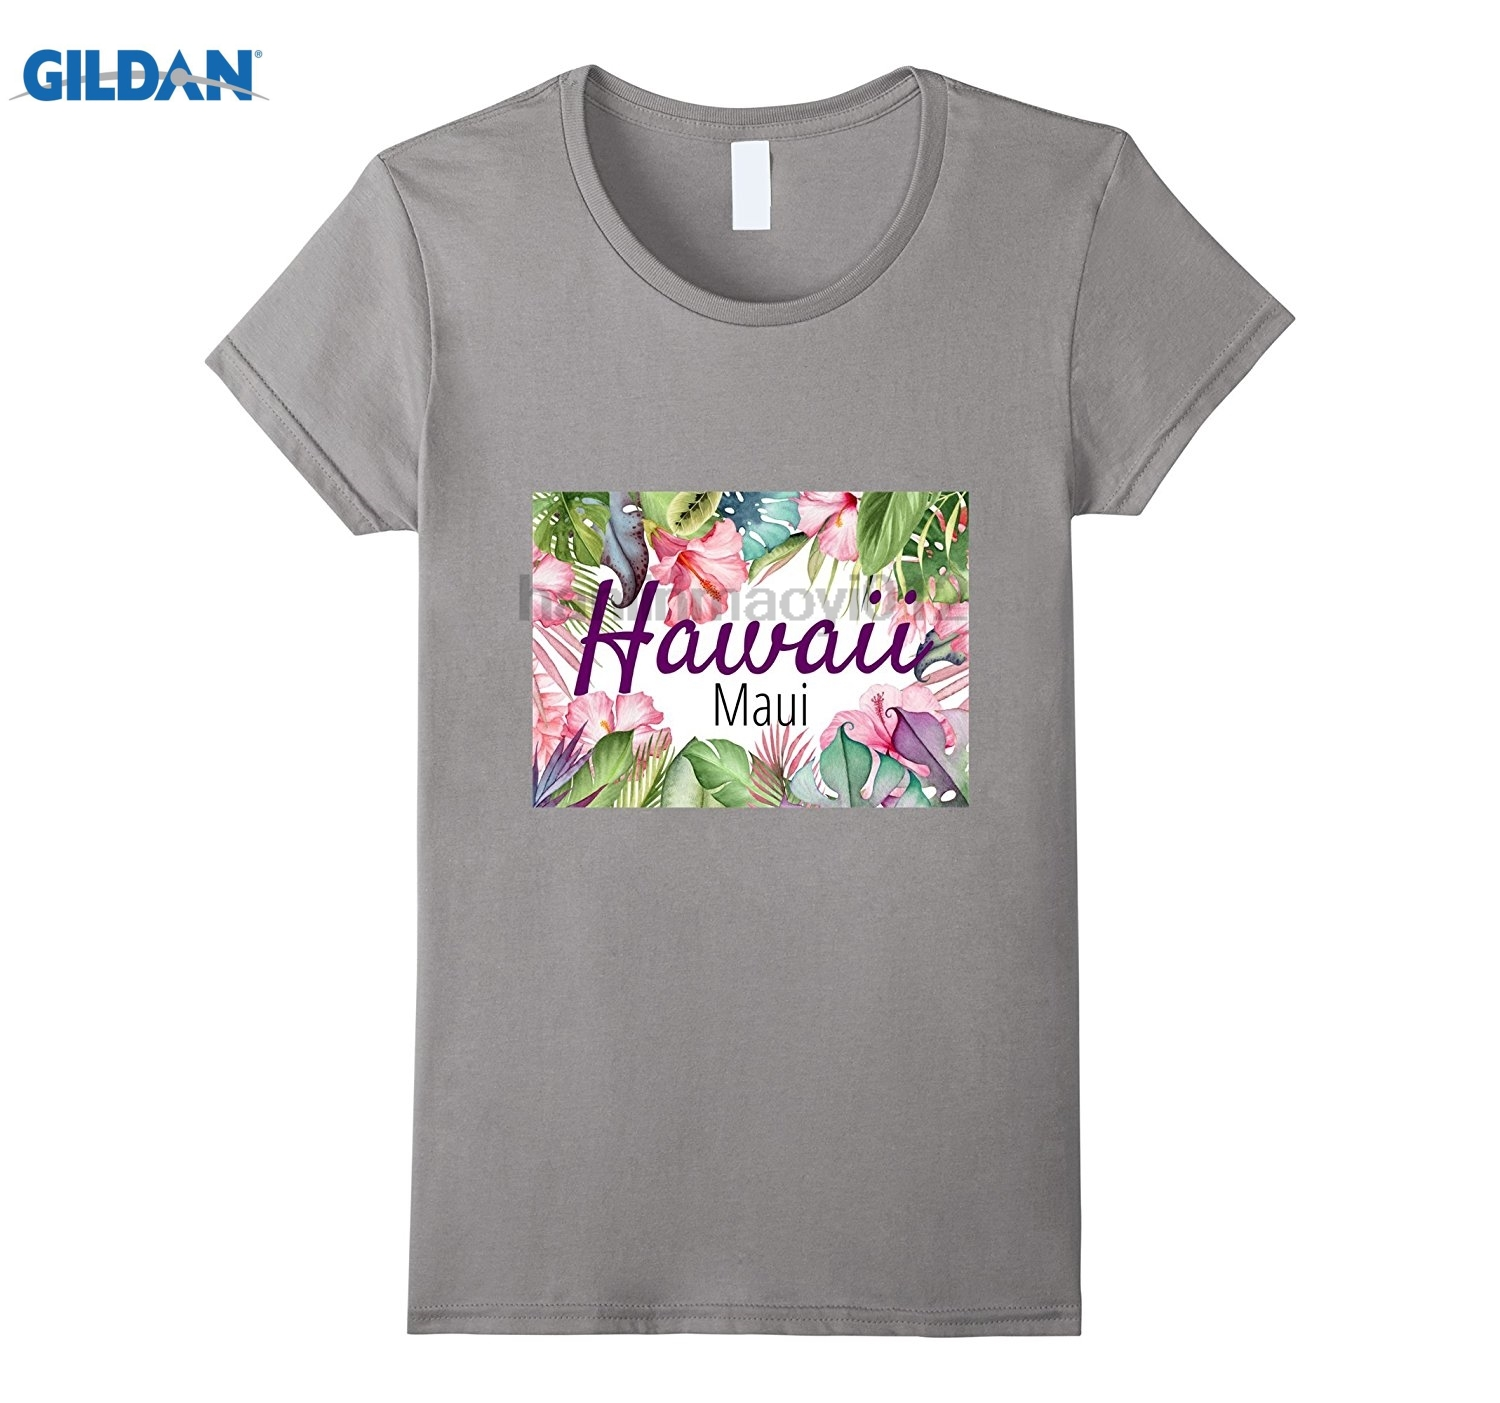 GILDAN Hawaiian Island Maui T-Shirt with tropical Flowers. glasses Womens T-shirt